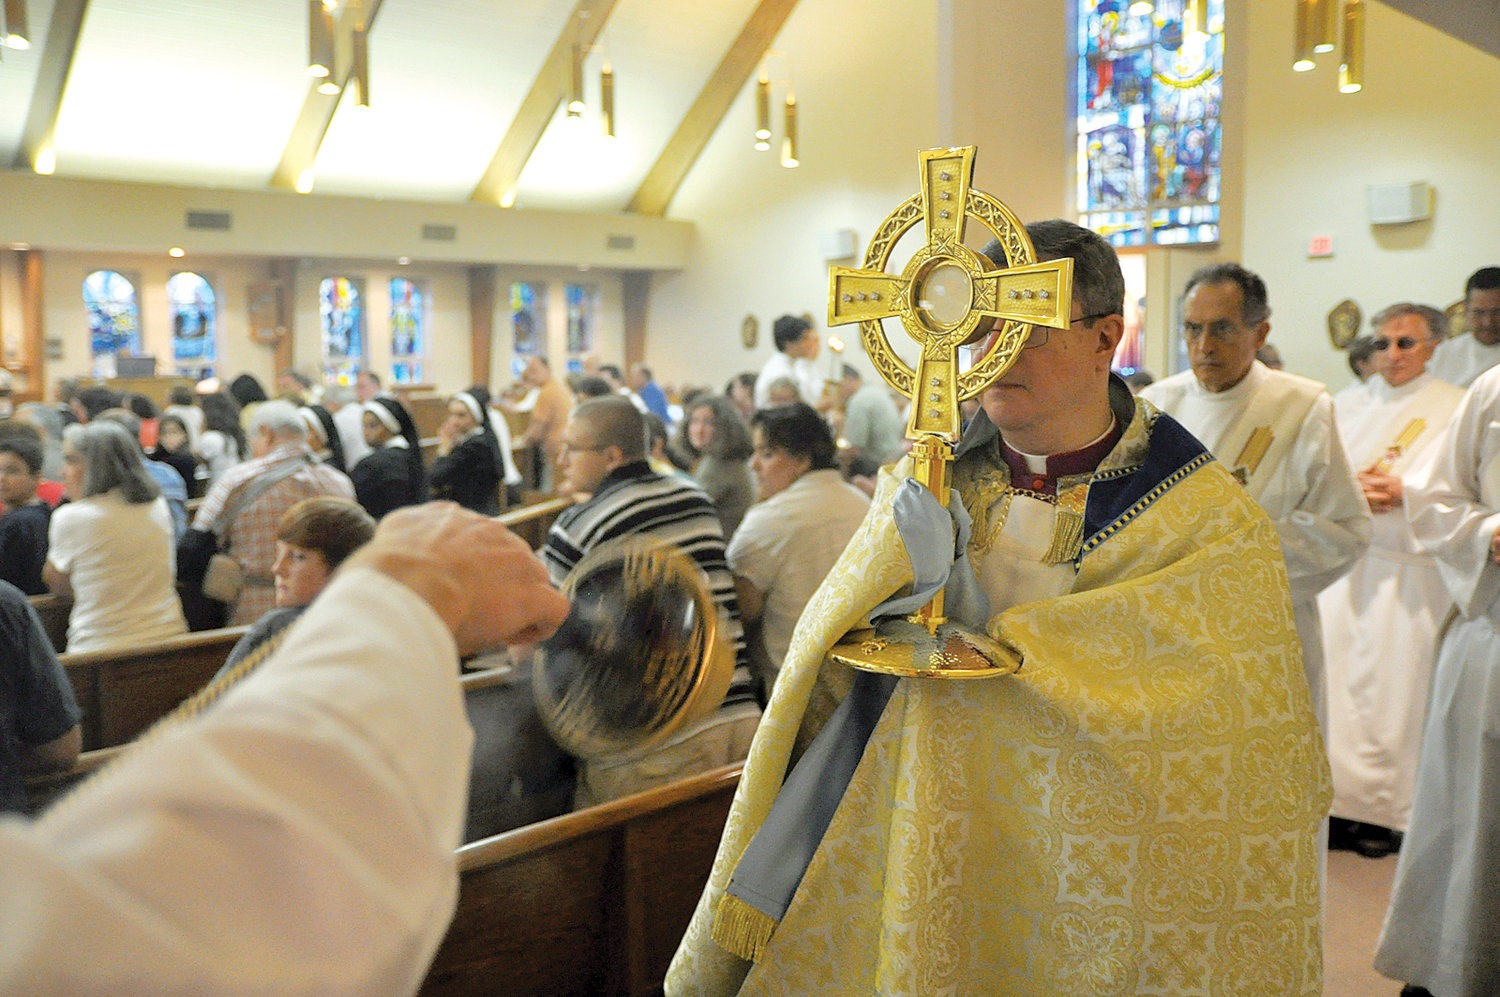 Bishop-elect Gerardo Colacicco, then pastor of St. Columba parish in Hopewell Junction, carries the Blessed Sacrament in a monstrance for the Feast of the Most Holy Body and Blood of Christ (Corpus Christi) in 2010. Members of two parishes in Hopewell Junction, St. Columba and St. Denis, gathered at St. Columba Church. The parishes and others in the archdiocese celebrated the feast with prayerful processions honoring the Blessed Sacrament.